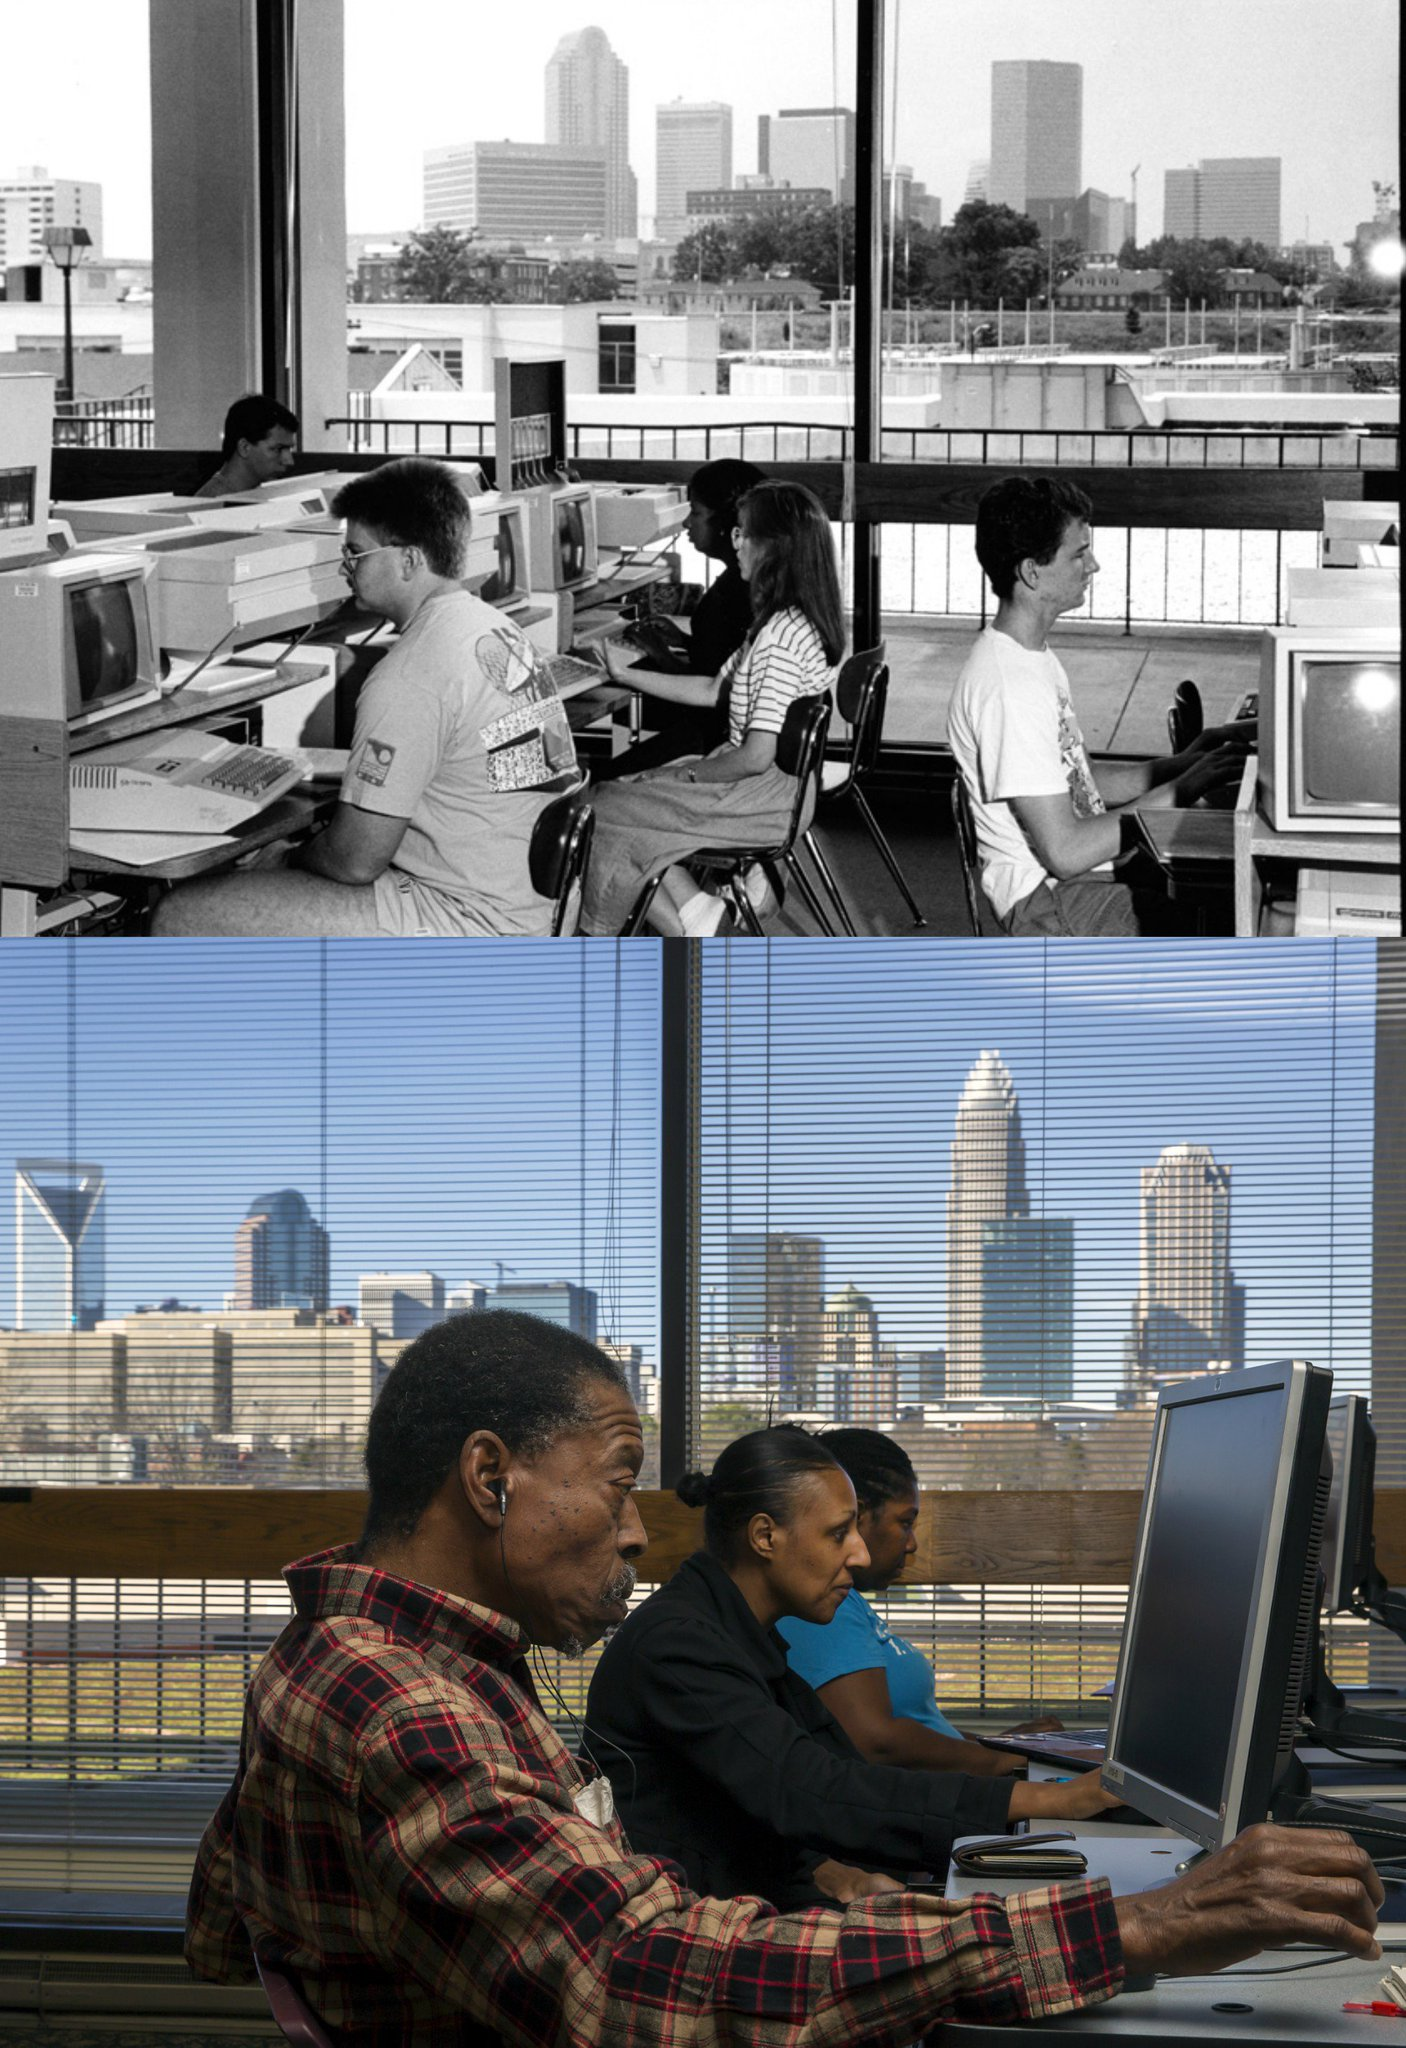 #TransformationTuesday Flashback to when the LRC got their first online database & computer lab (c. 1989). The bottom image is today! https://t.co/ZwyUtdlDKG